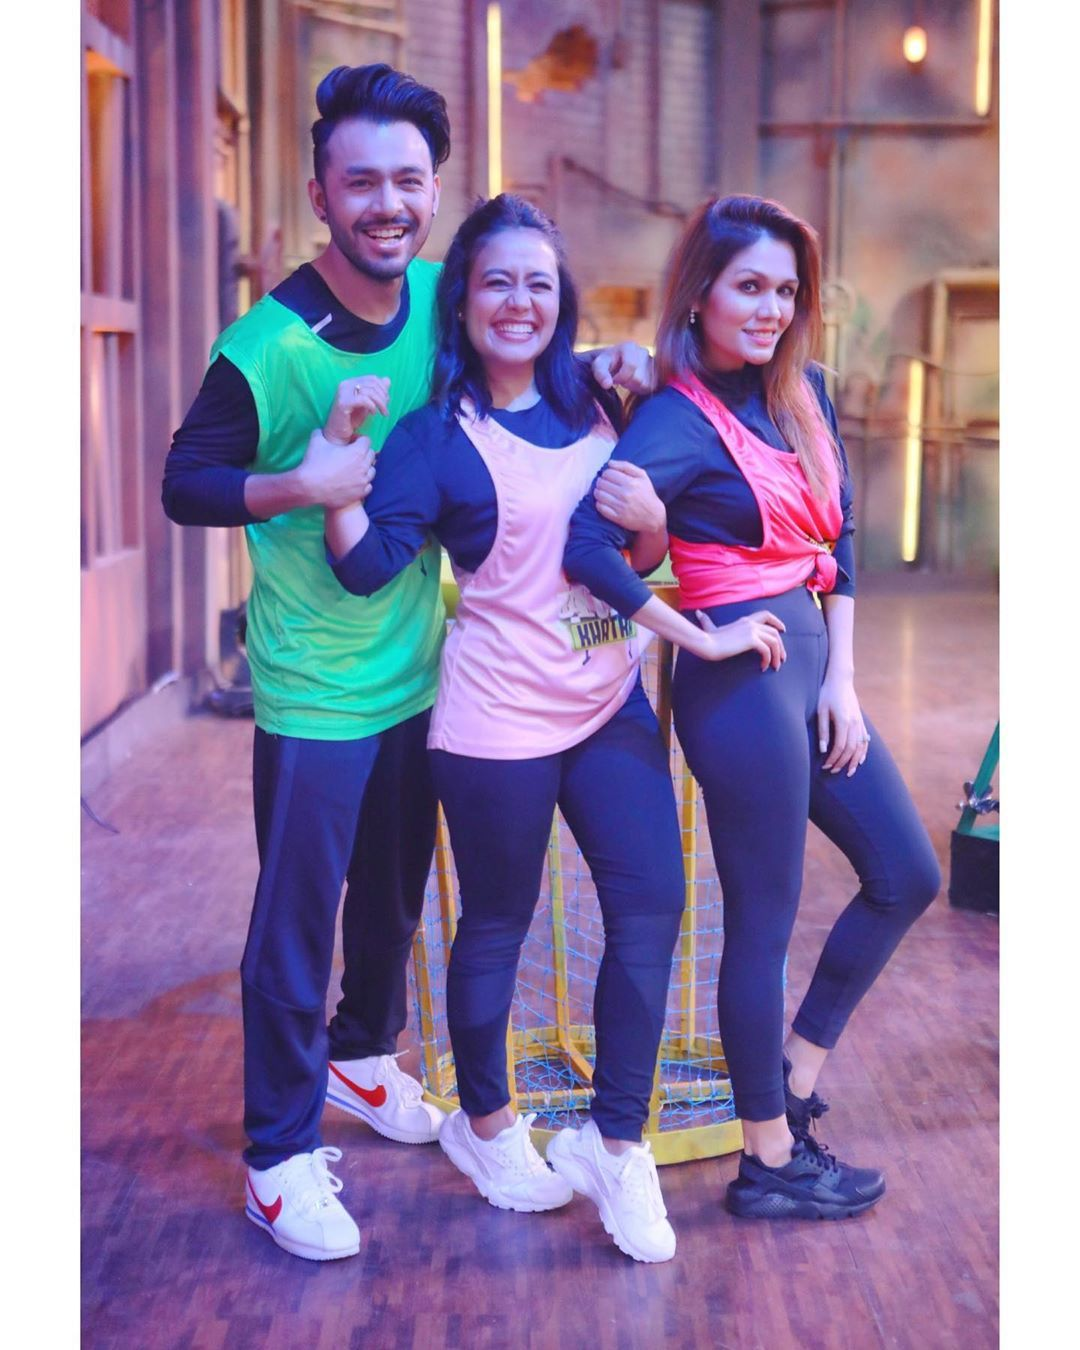 Image May Contain One Or More People And People Standing Stylish Girls Photos Short Girl Fashion Neha Kakkar Dresses